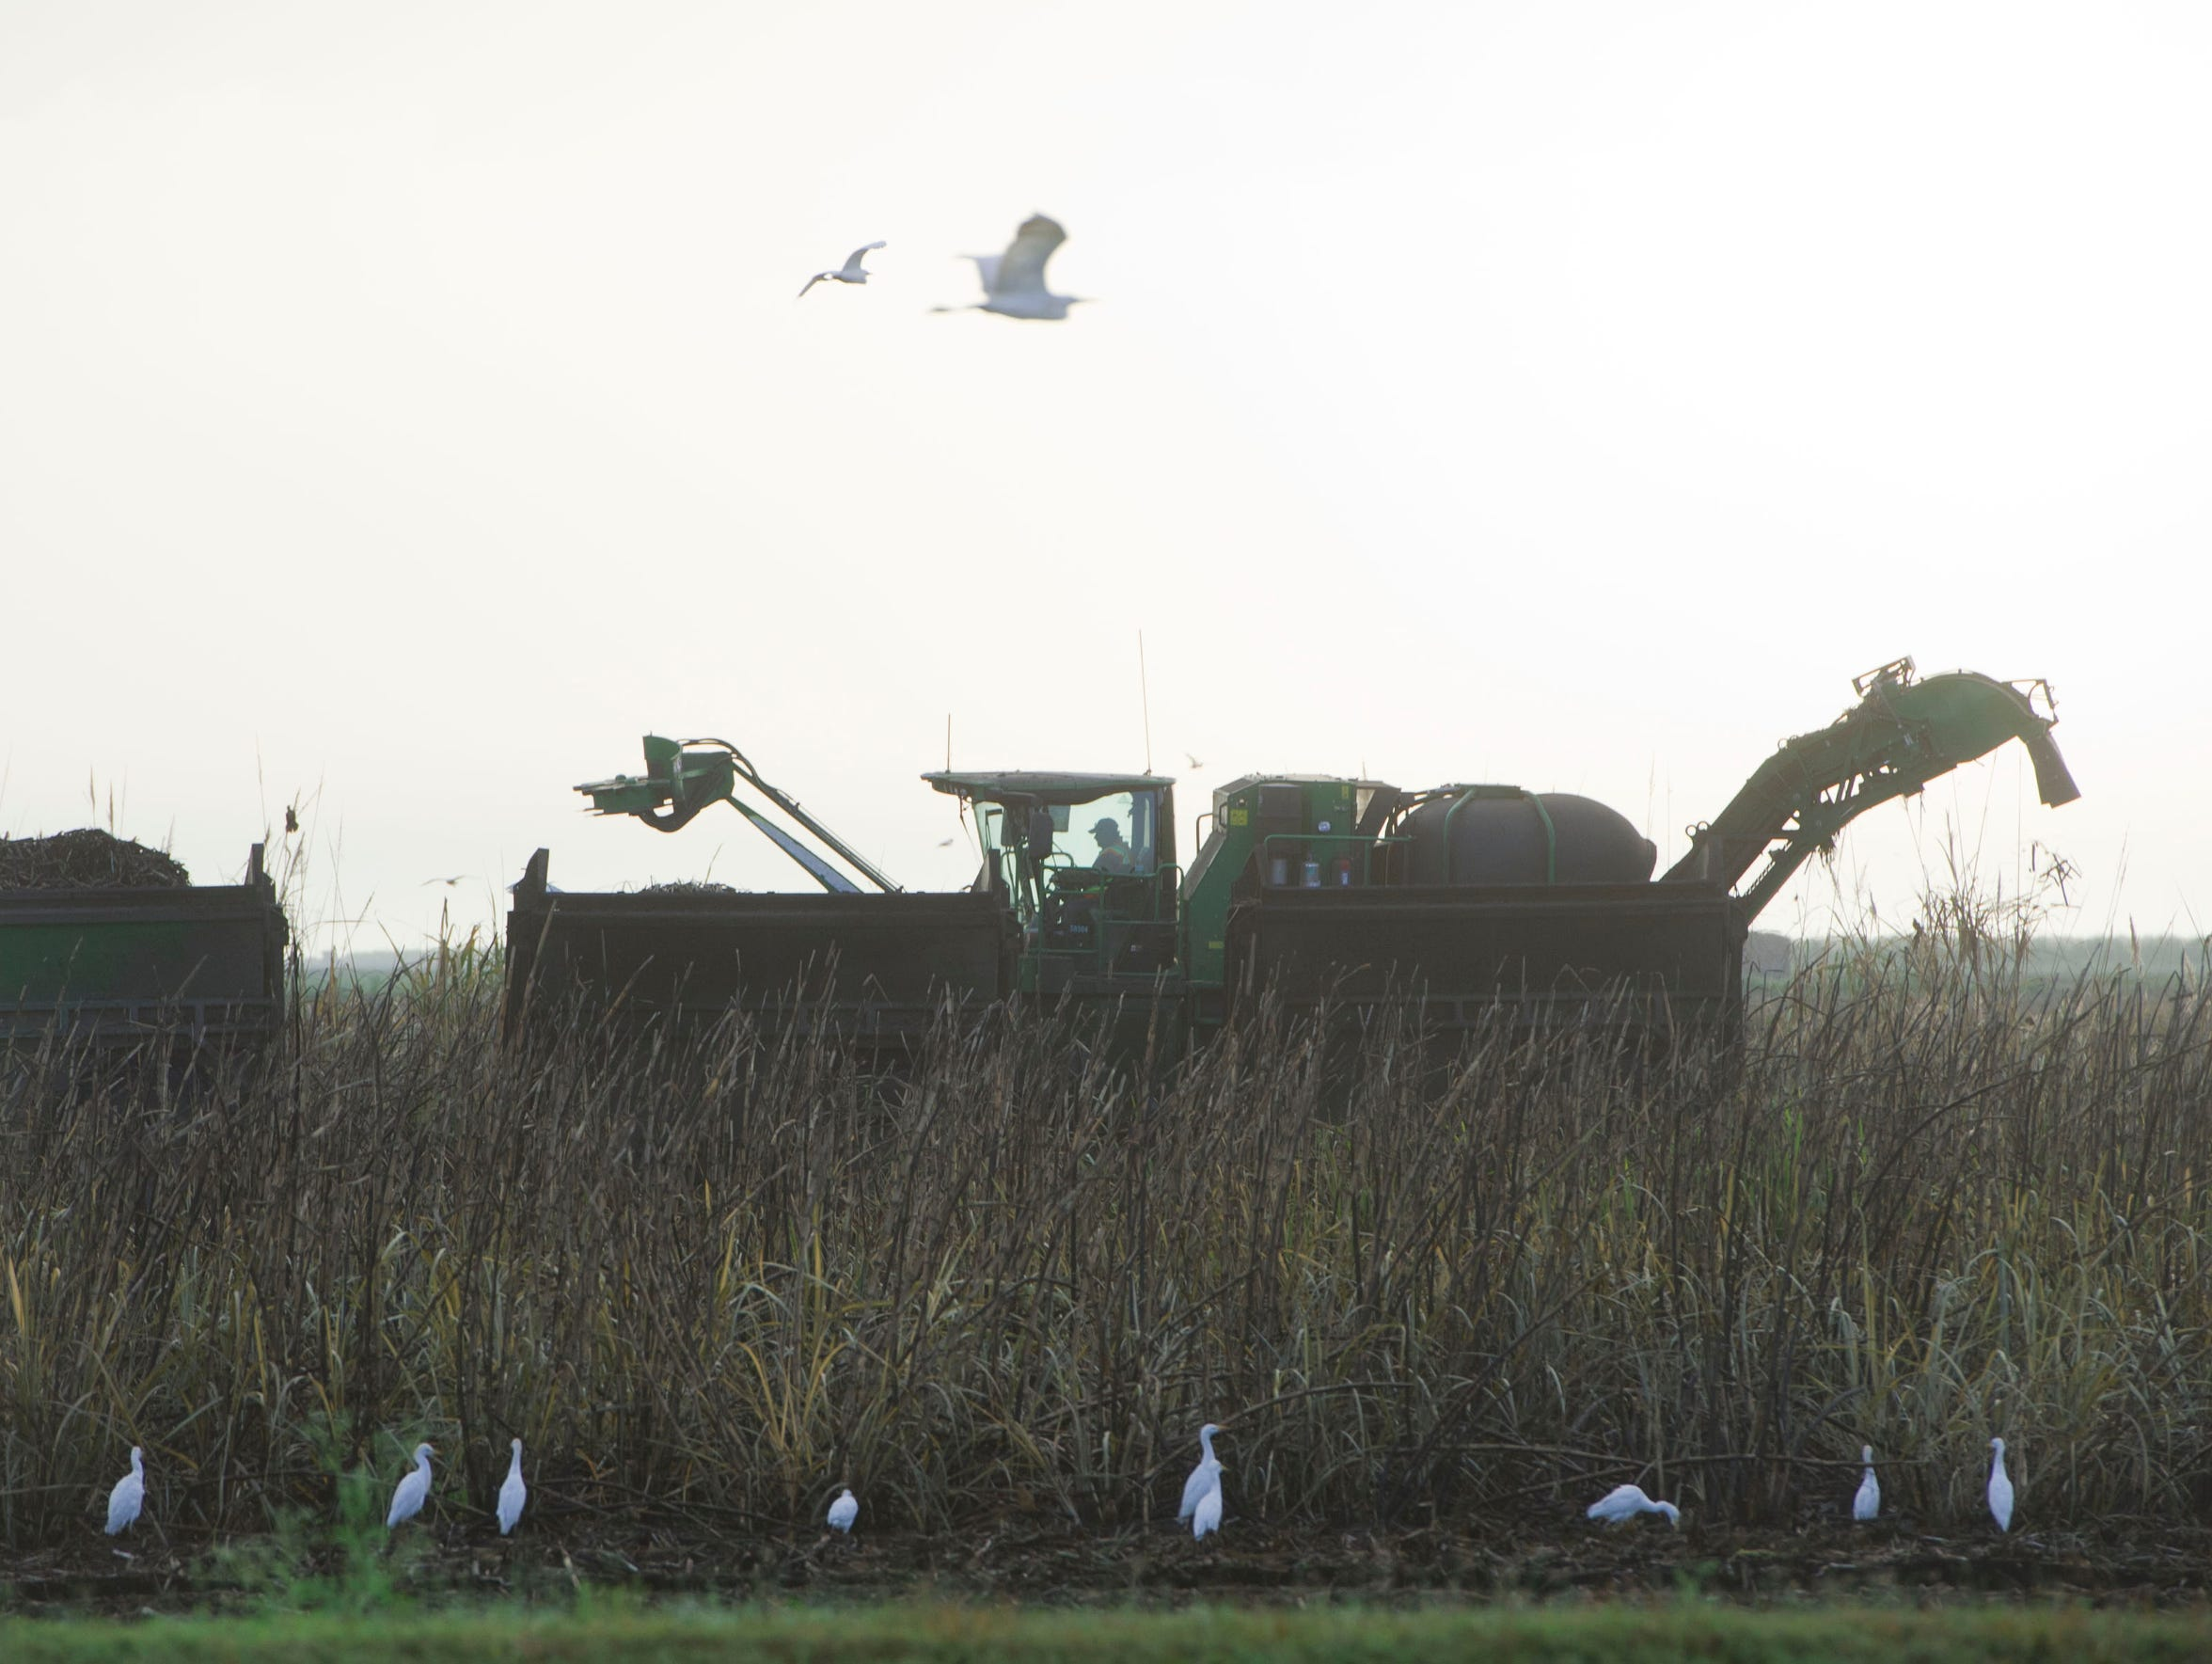 Sugar cane is harvested Feb. 28, 2017 near the Sugar